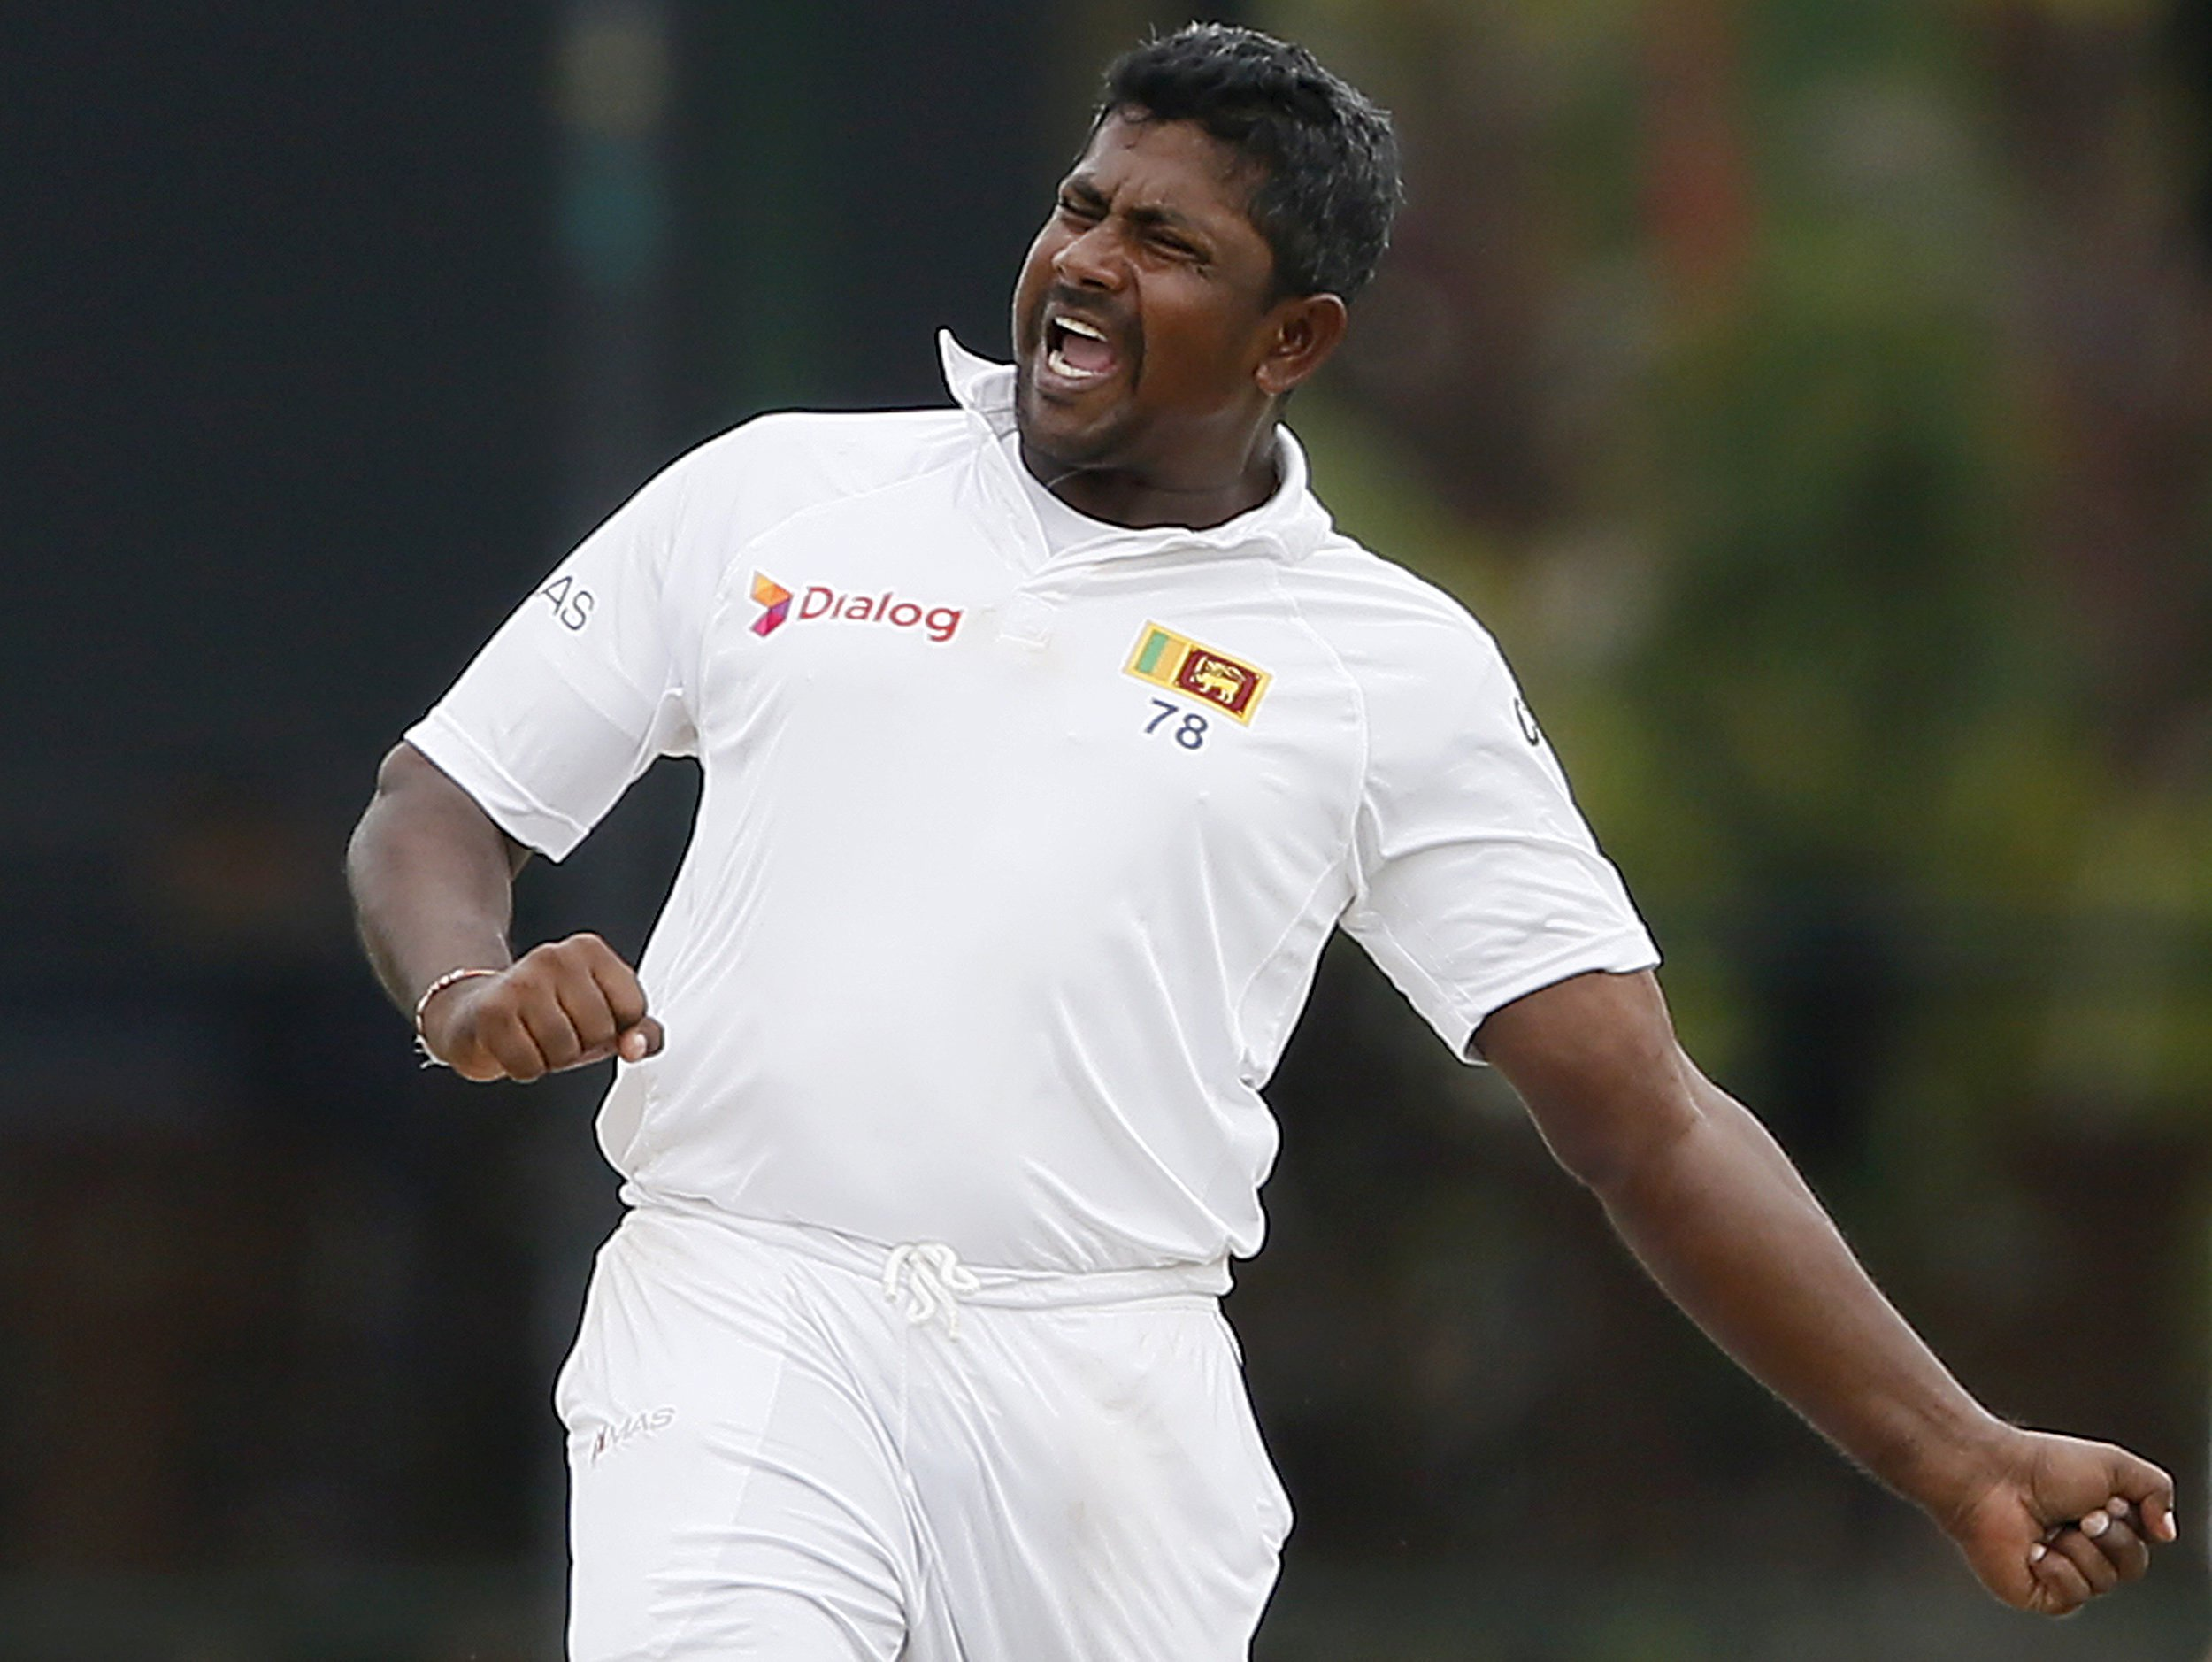 Sri Lanka's Rangana Herath celebrates after taking the wicket of West Indies' Denesh Ramdin (not pictured) during the final day of their second test cricket match in Colombo October 26, 2015. REUTERS/Dinuka Liyanawatte.